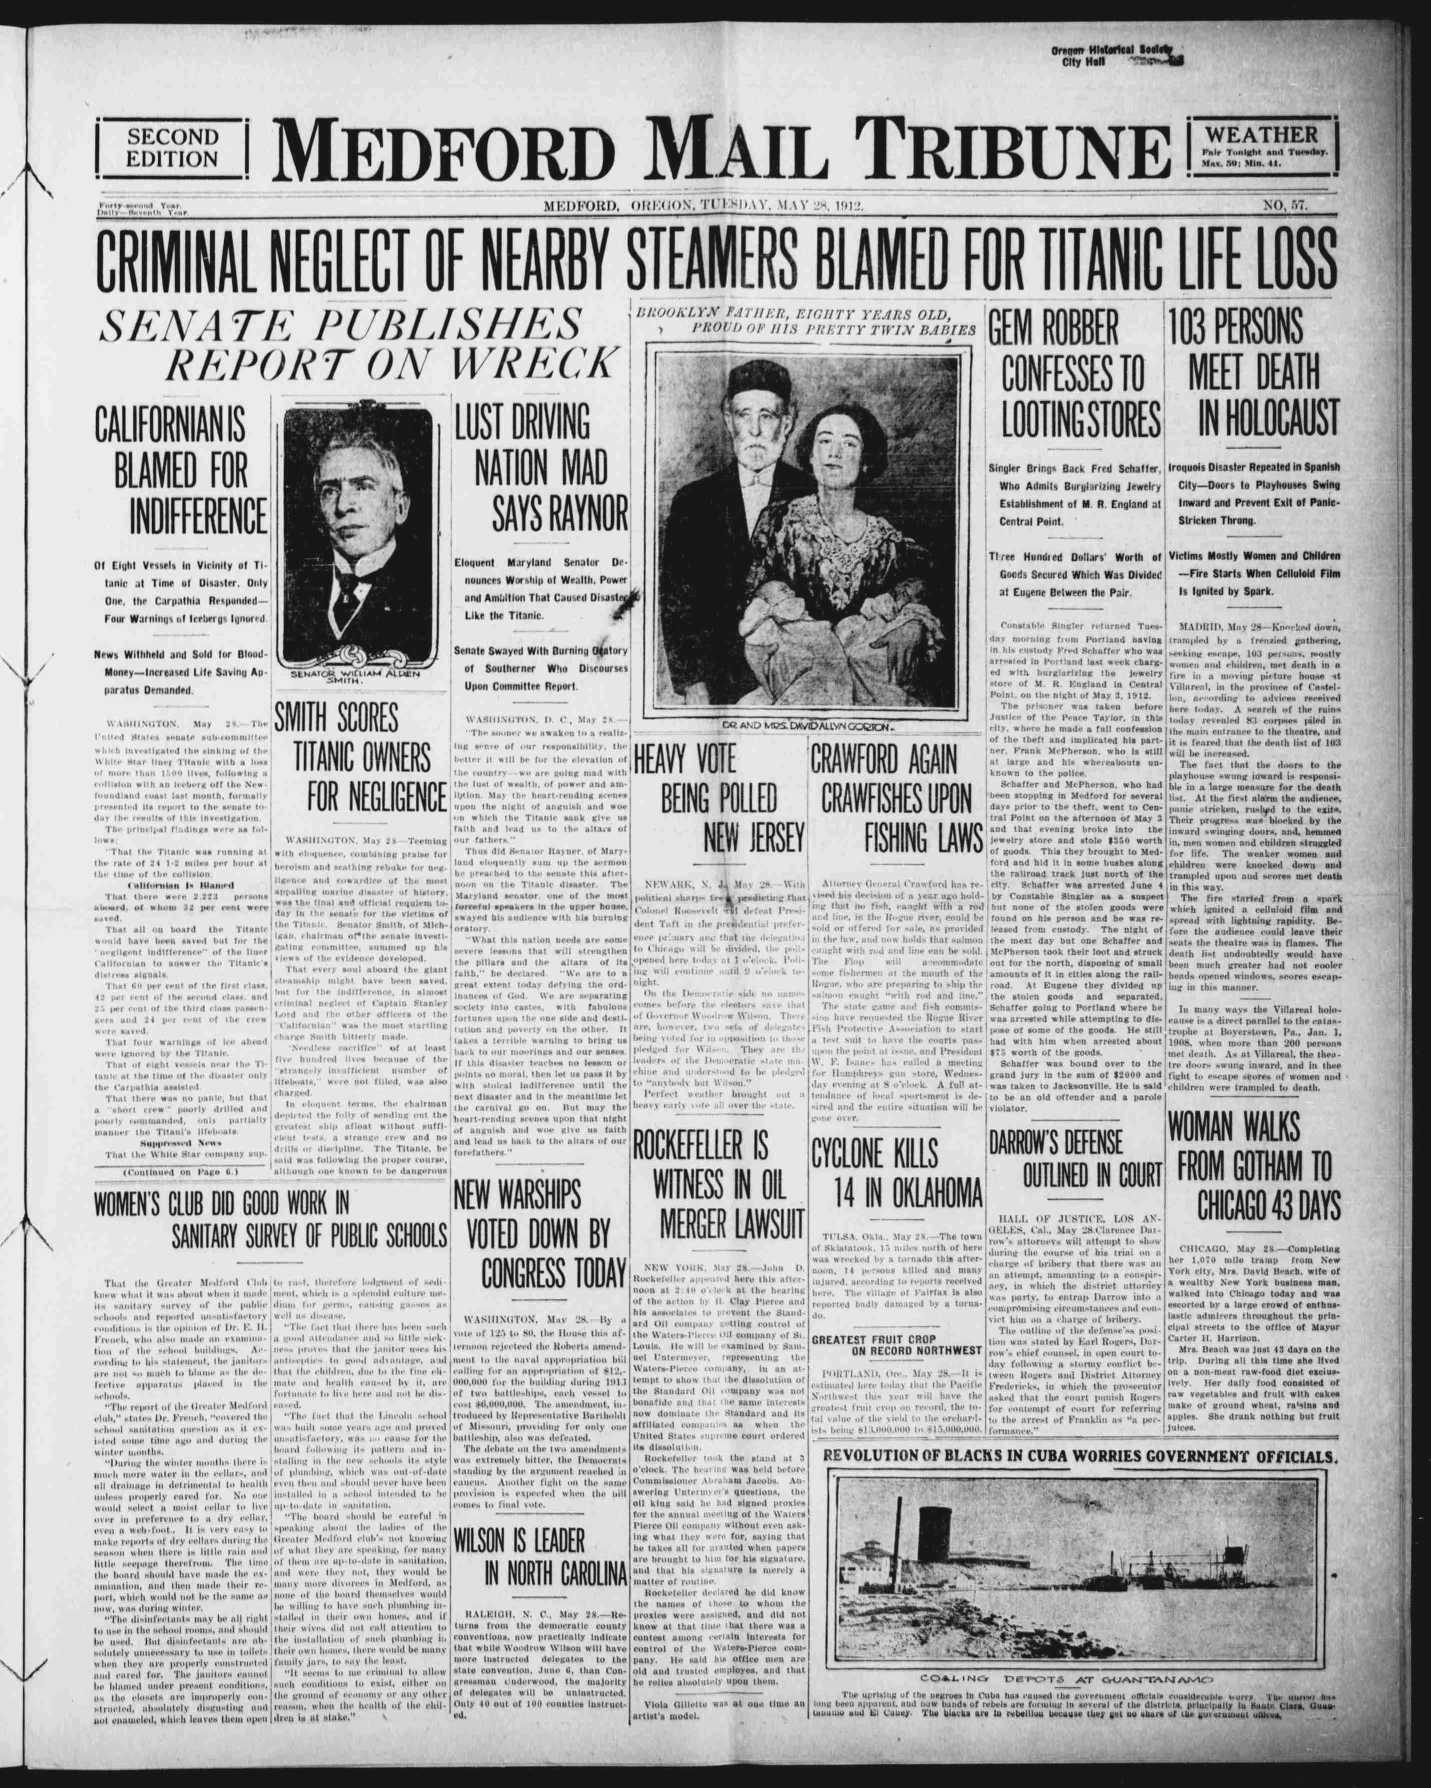 Titanic Newpaper Front Page 1912-05-28 Medford Mail Tribune, May 28, 1912, SECOND EDITION, Page 1